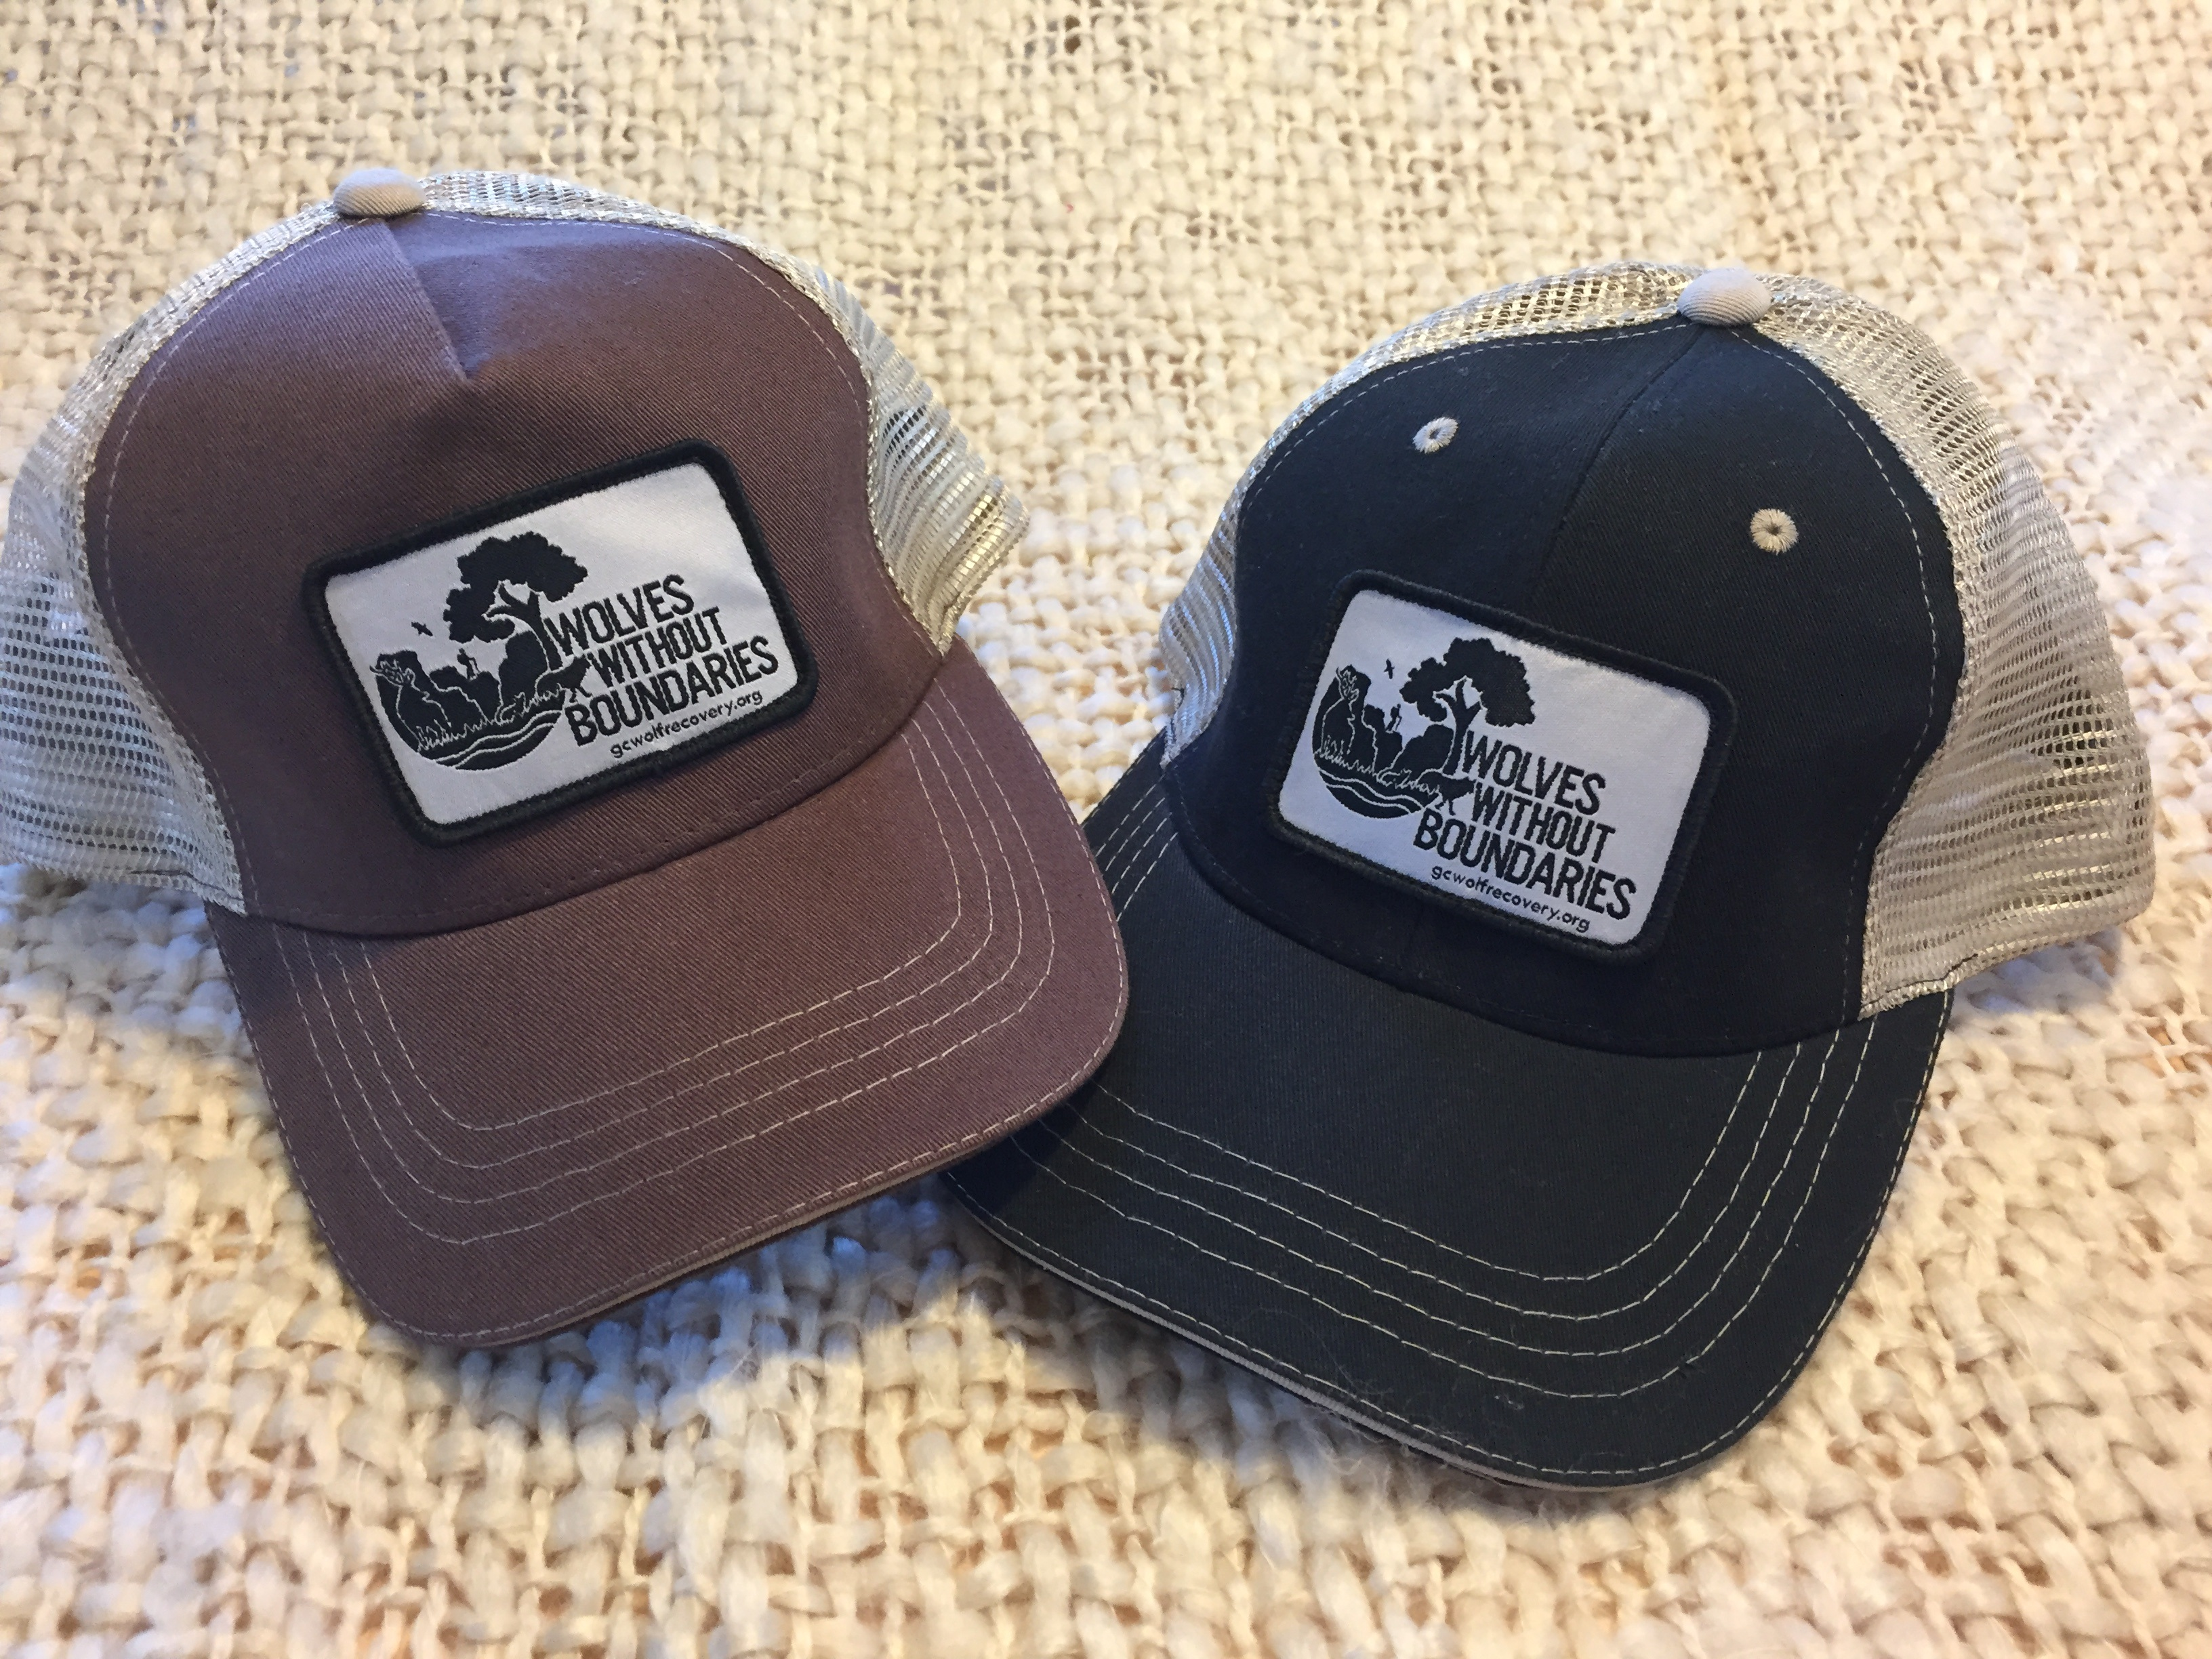 WWB brown and black trucker hats